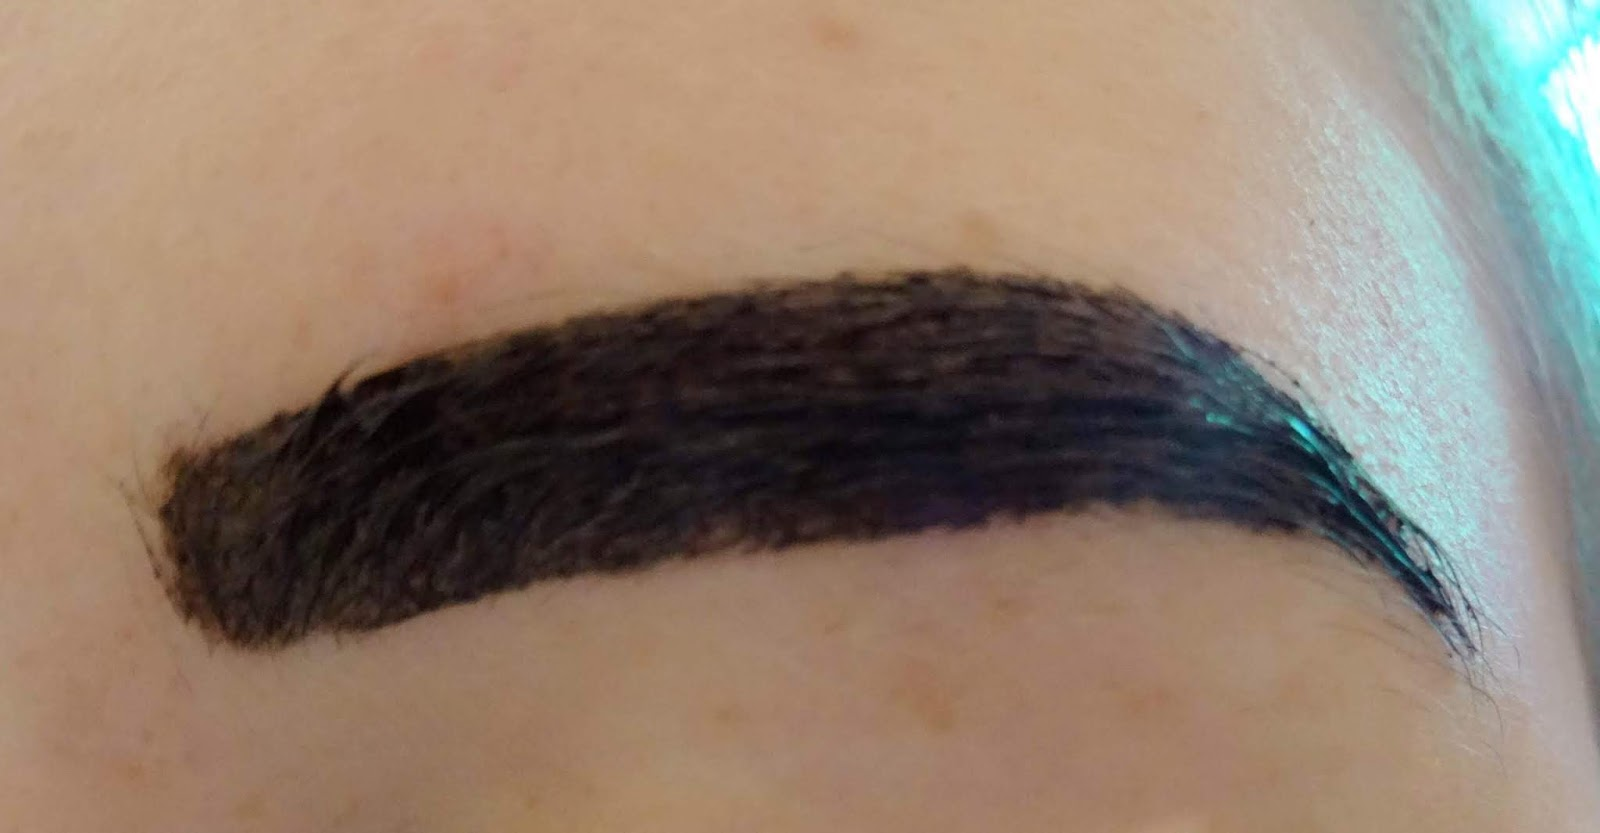 Maybelline Brow Tattoo Before Photo